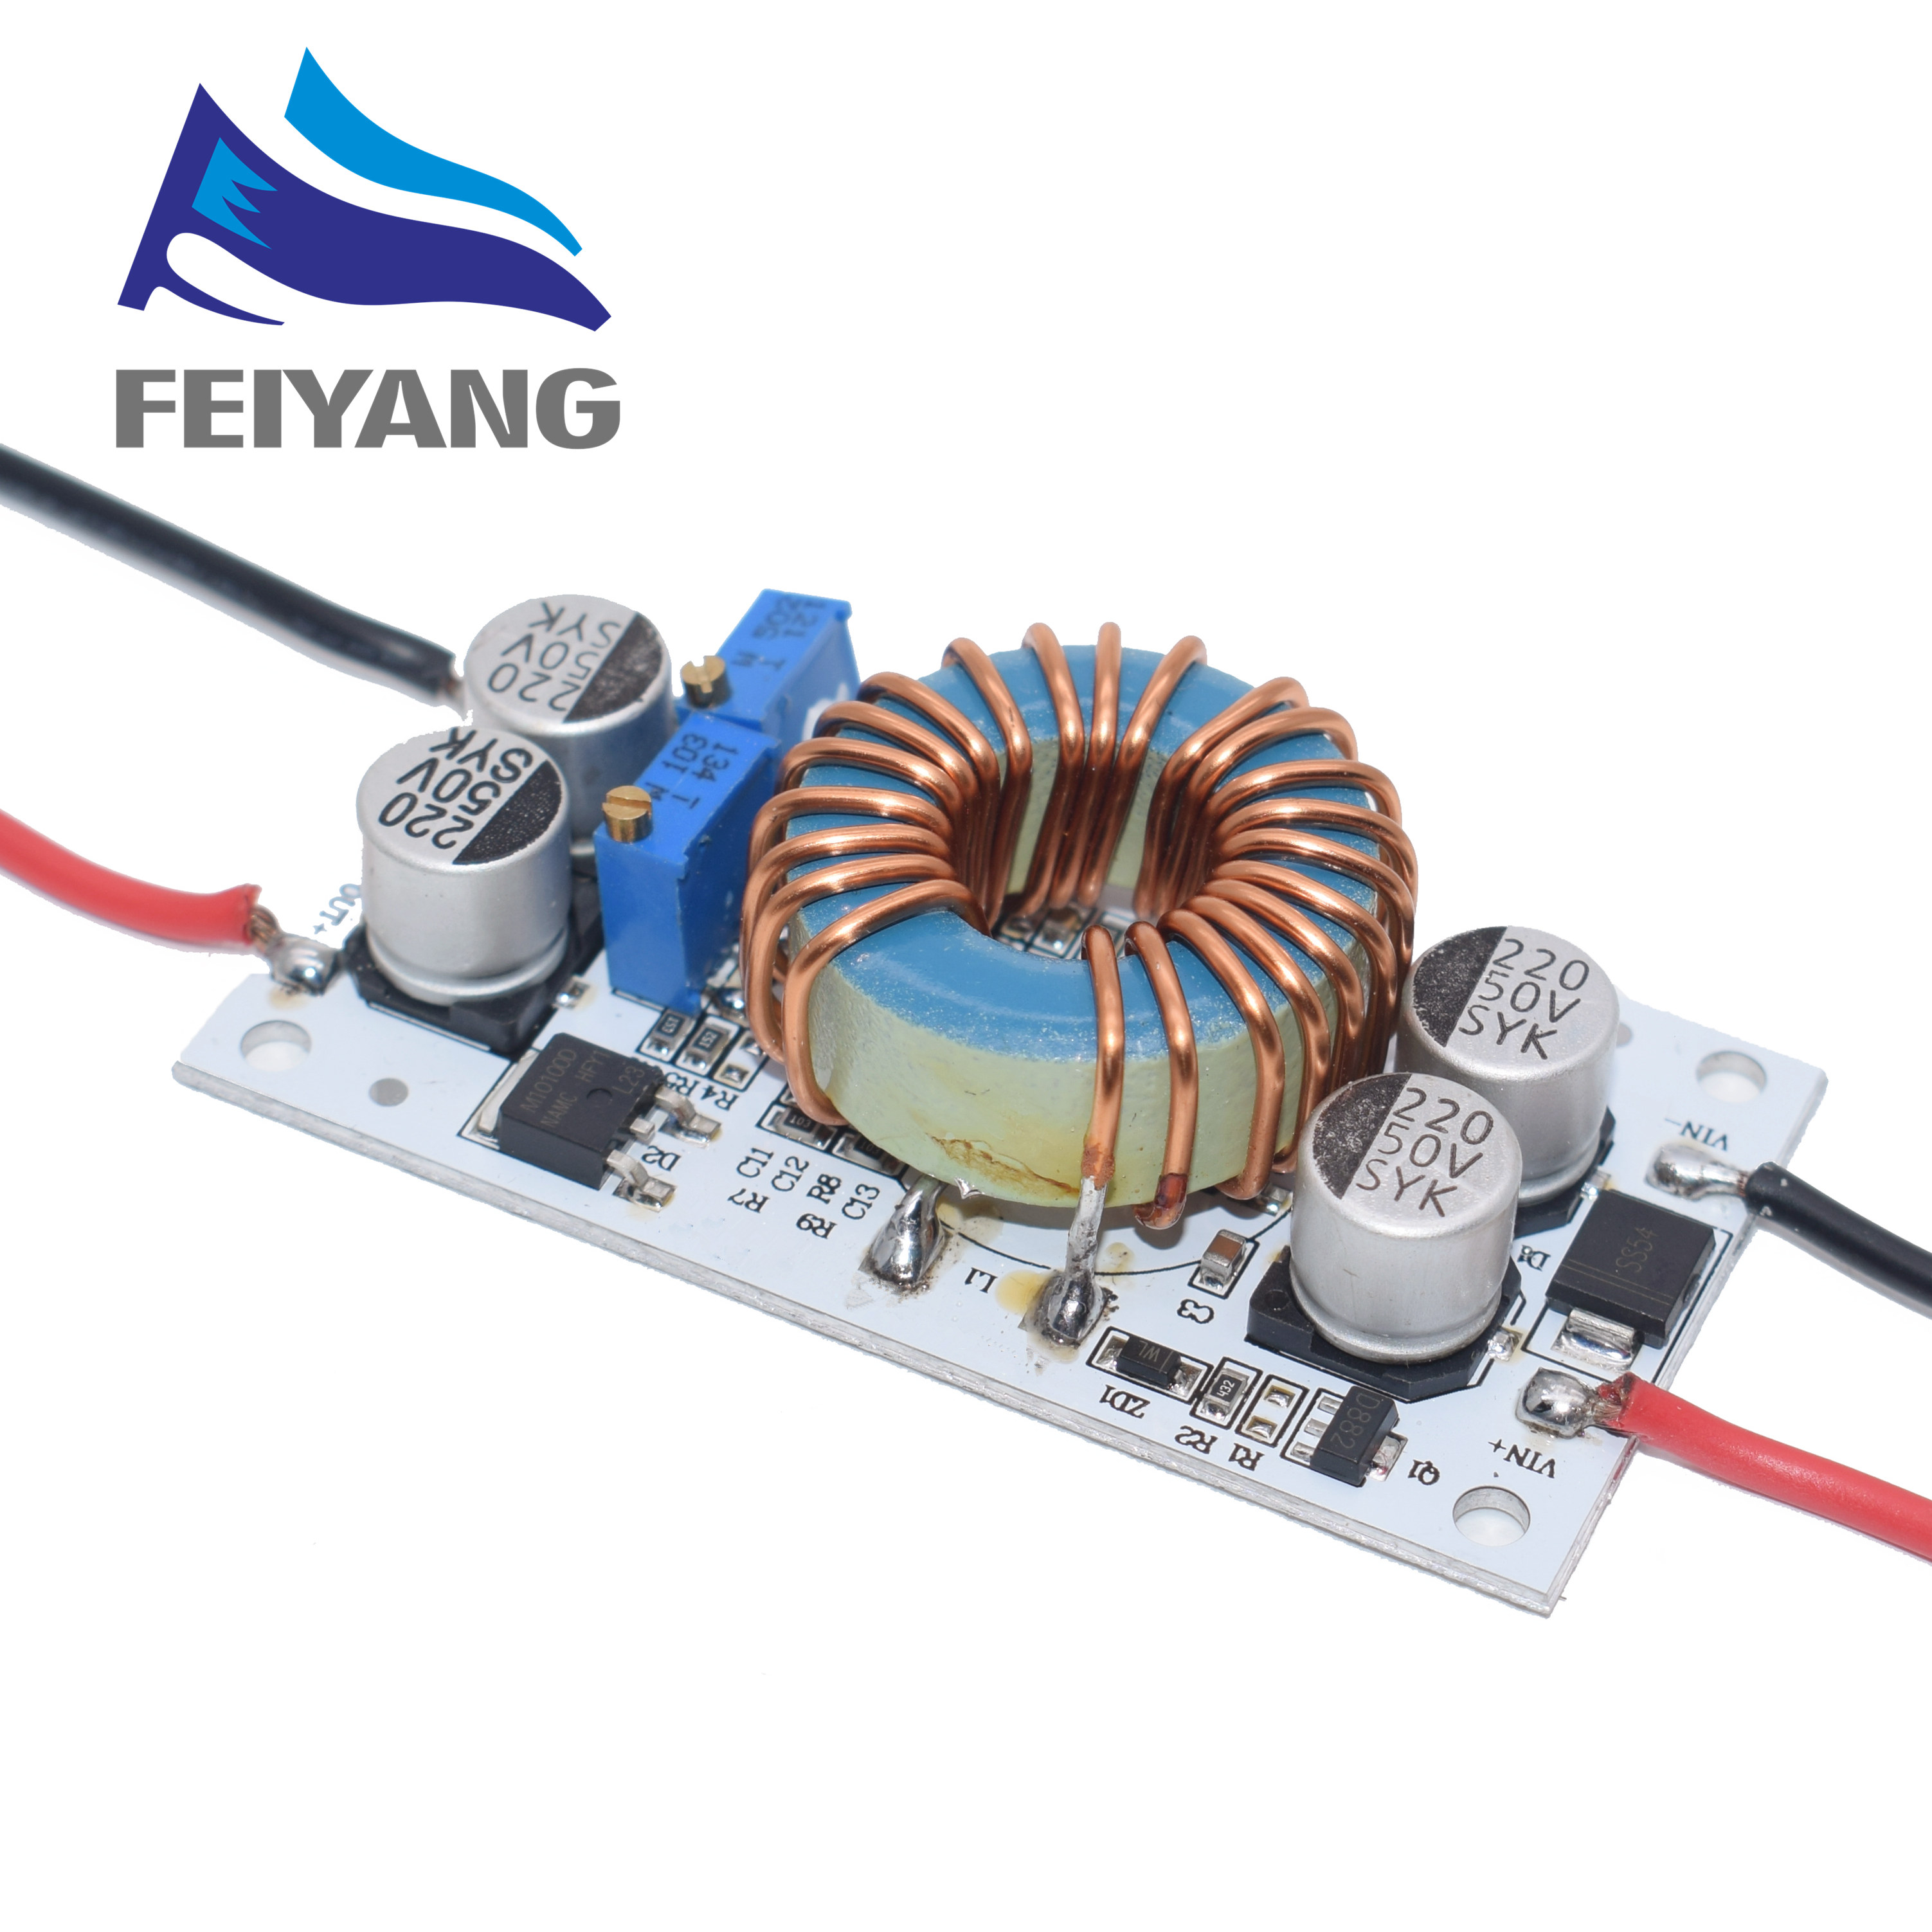 10pcs DC DC boost converter Constant Current Mobile Power supply 10A 250W LED Driver